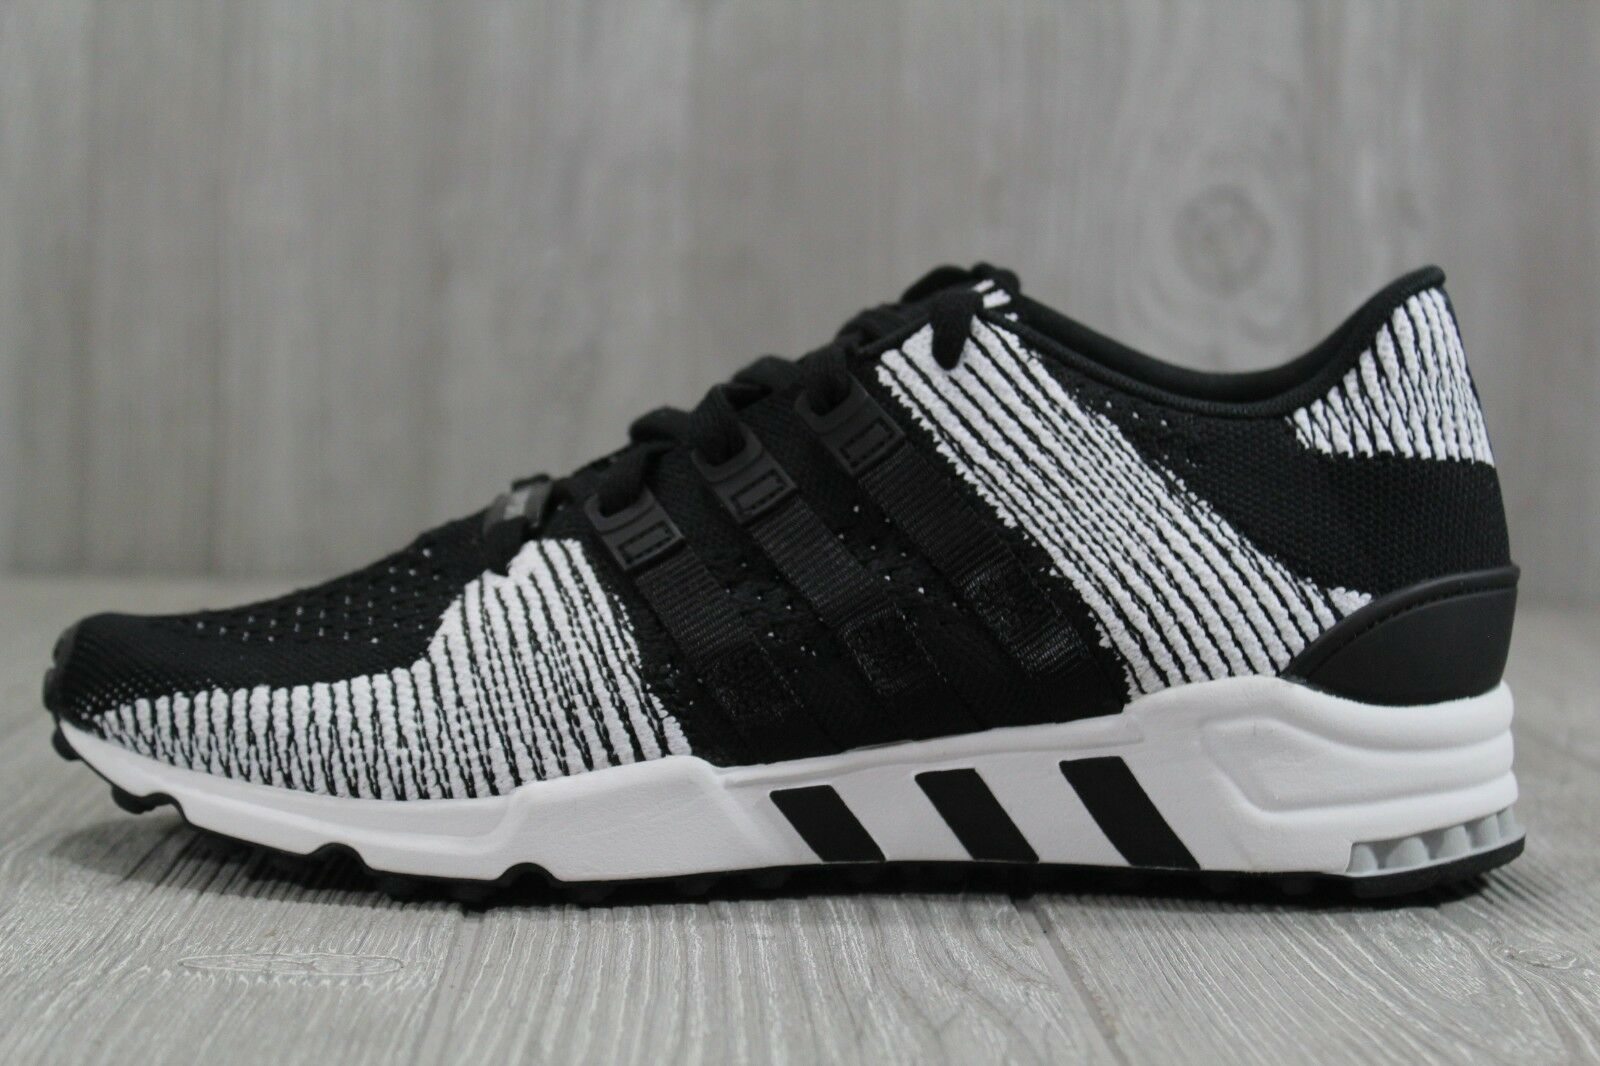 35 Adidas Originals Equipment Support RF PK Black White shoes Mens BY9689 9.5-11